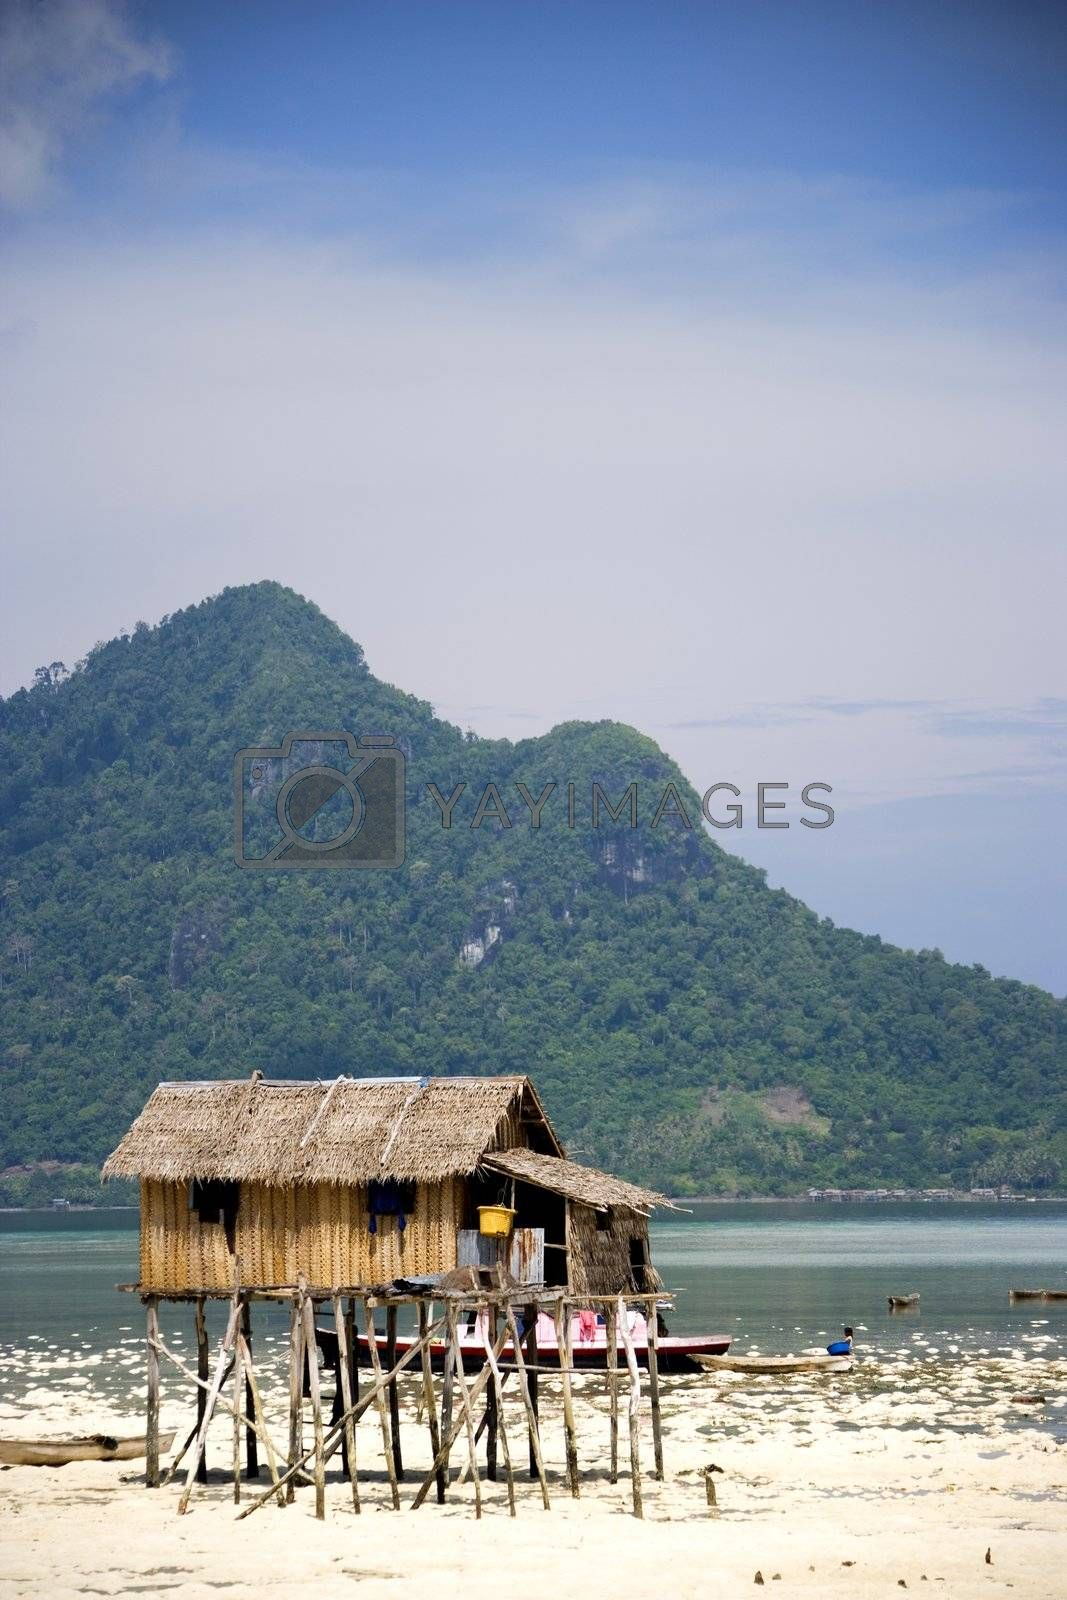 Royalty free image of Native Huts on Stilts by shariffc